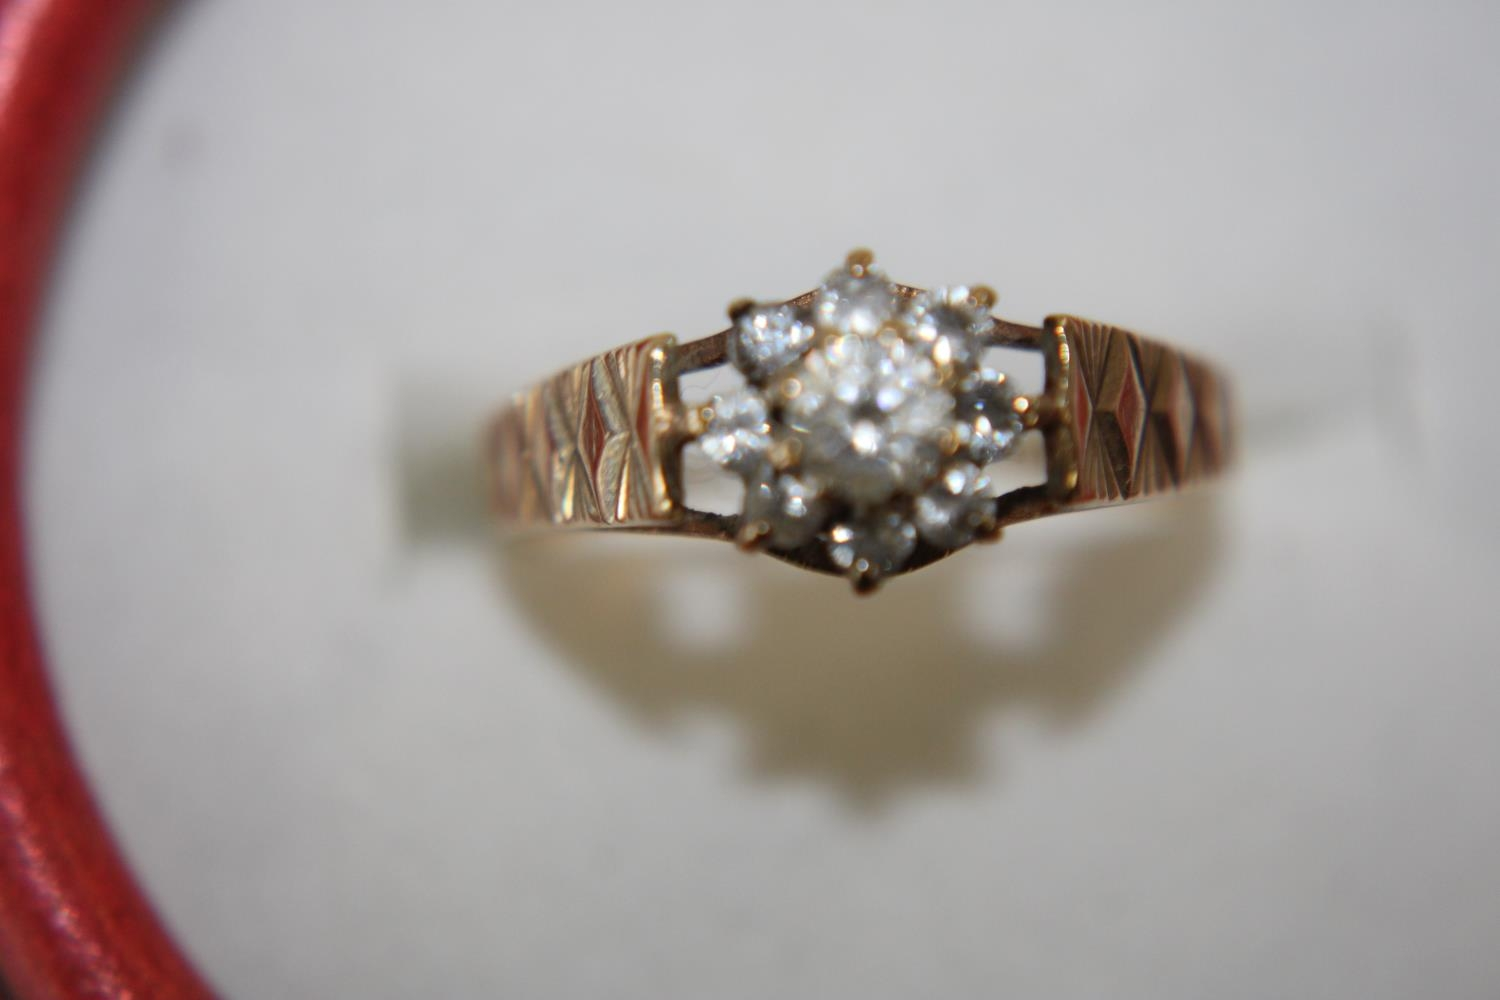 A 9ct gold white stone cluster ring size N 1/2